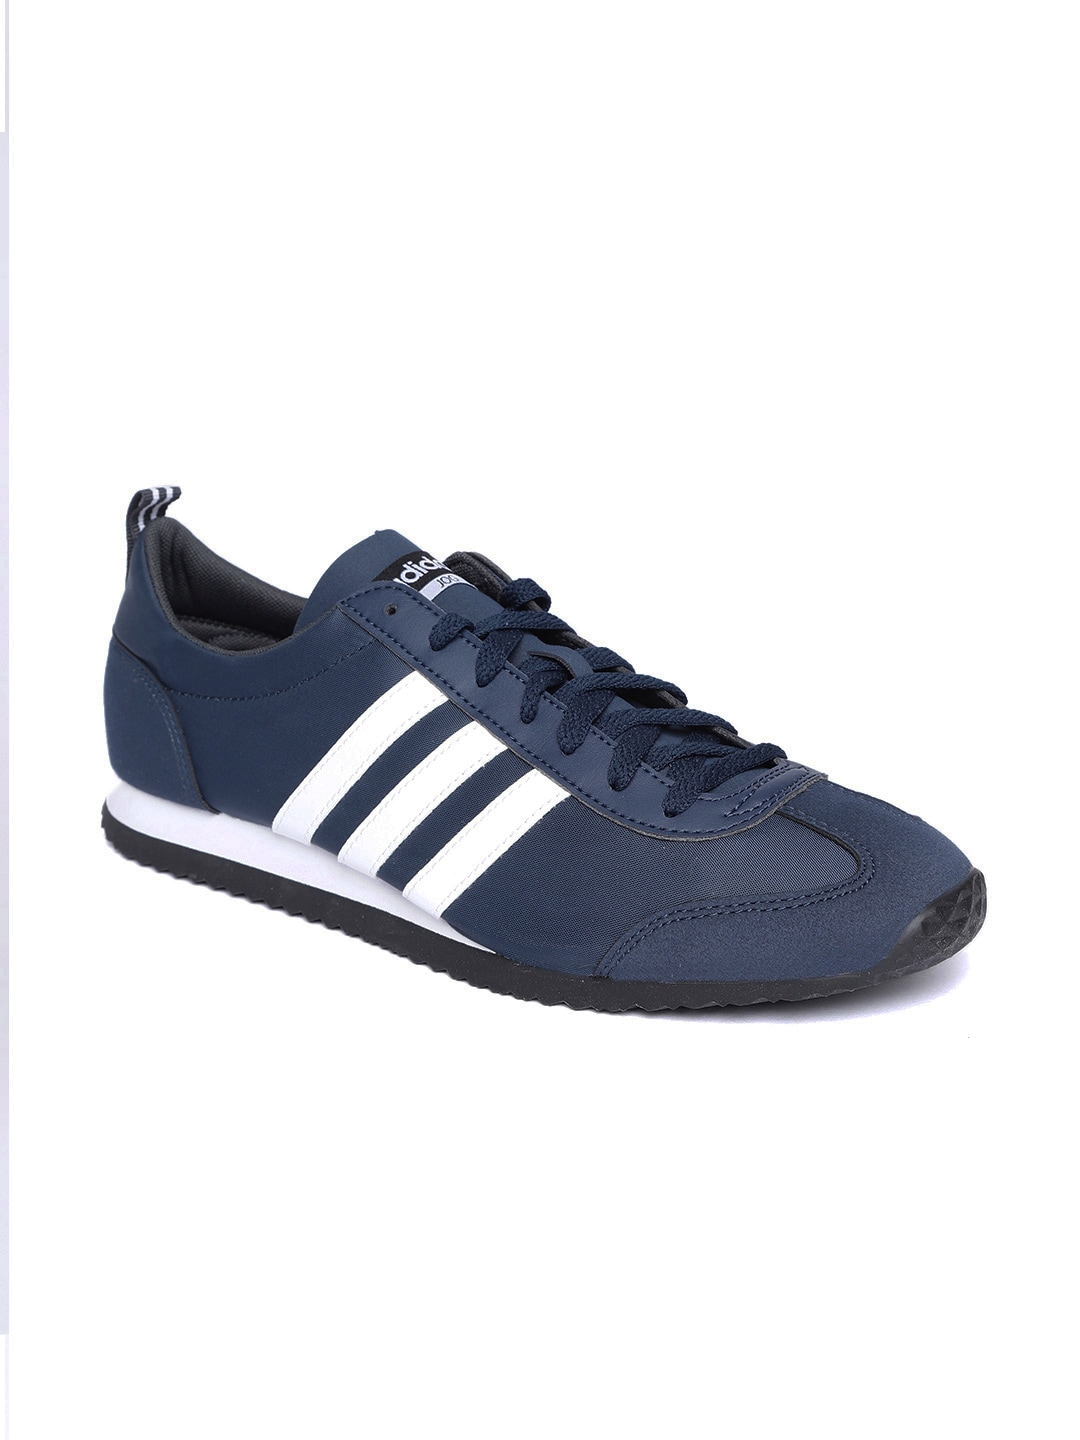 fc6f834573f Adidas Textile - Buy Adidas Textile online in India